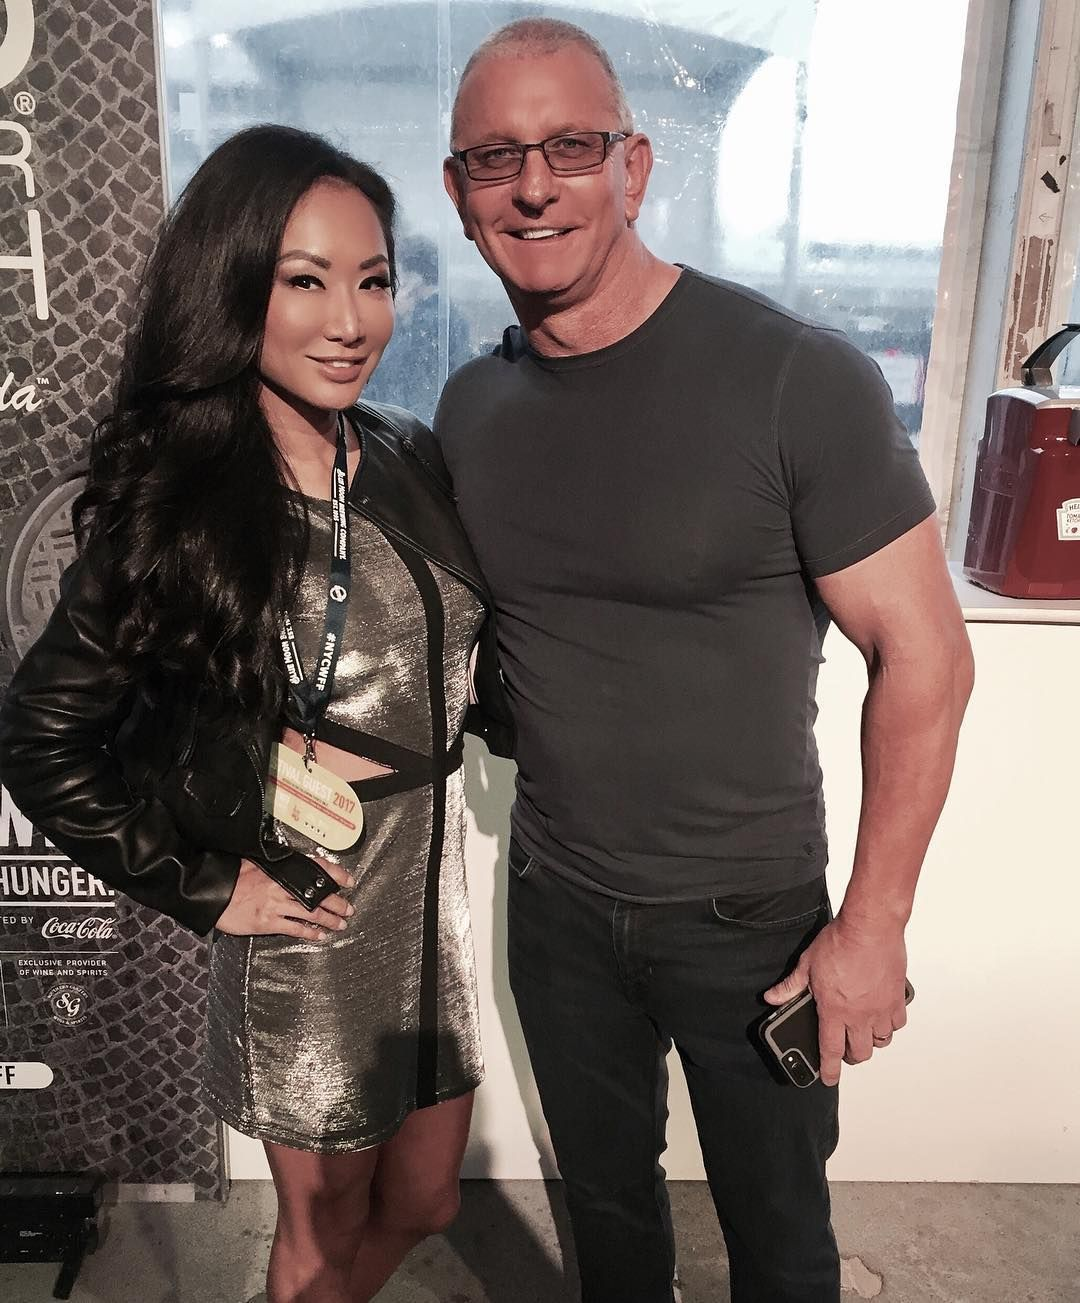 Gail Kim with know-it-all, Husband Robert Irvine